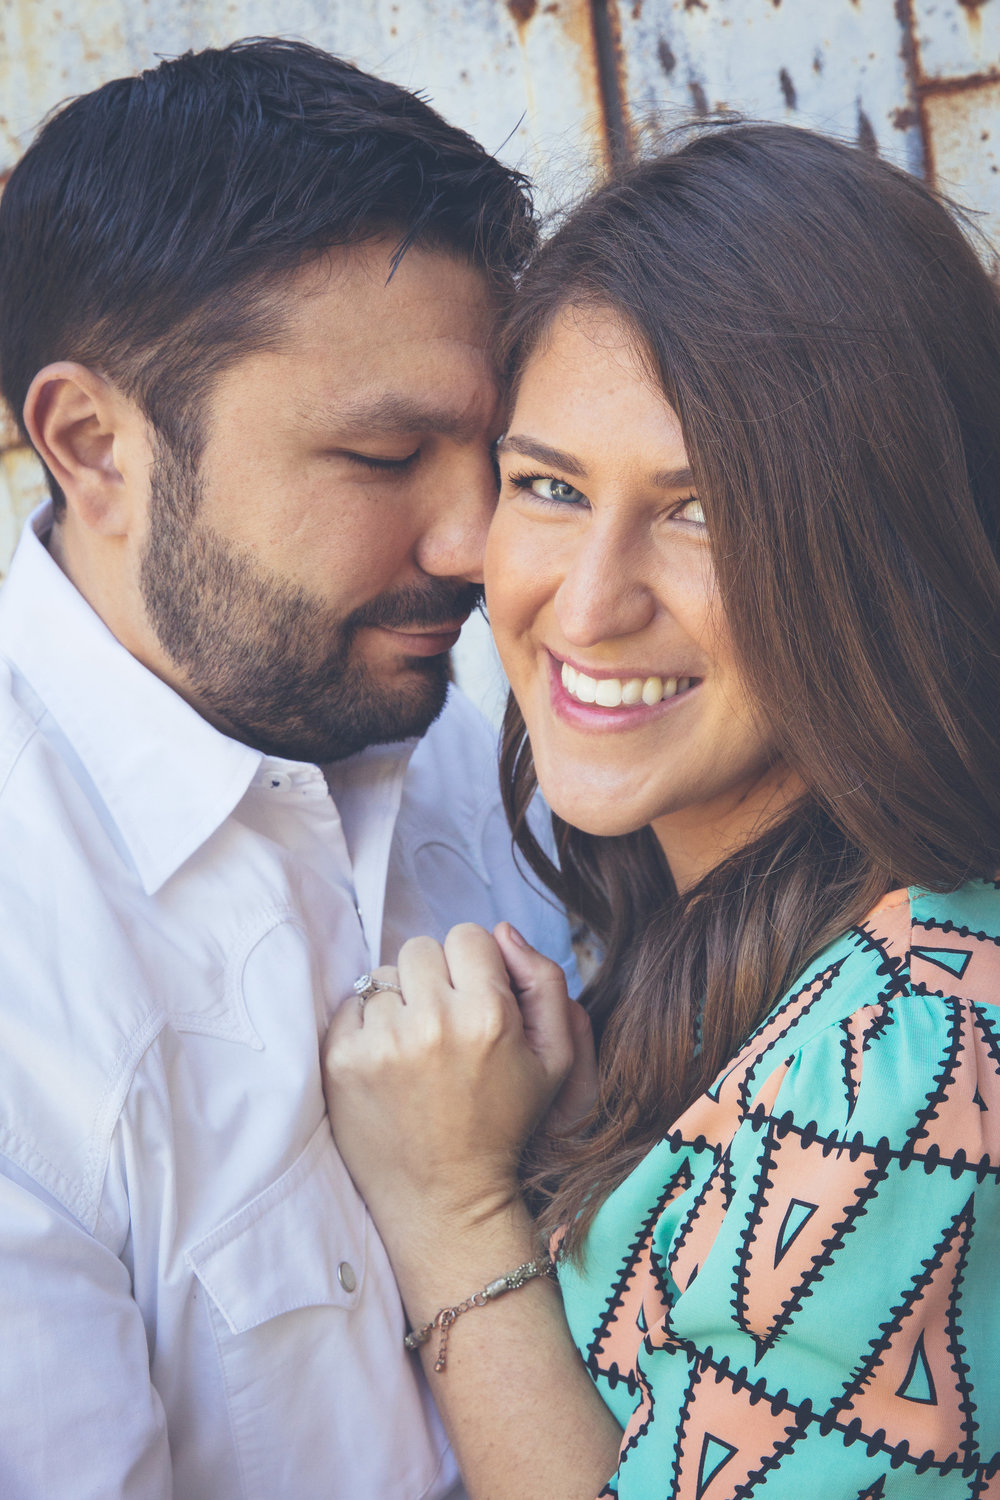 Downtown McKinney Engagement Photography